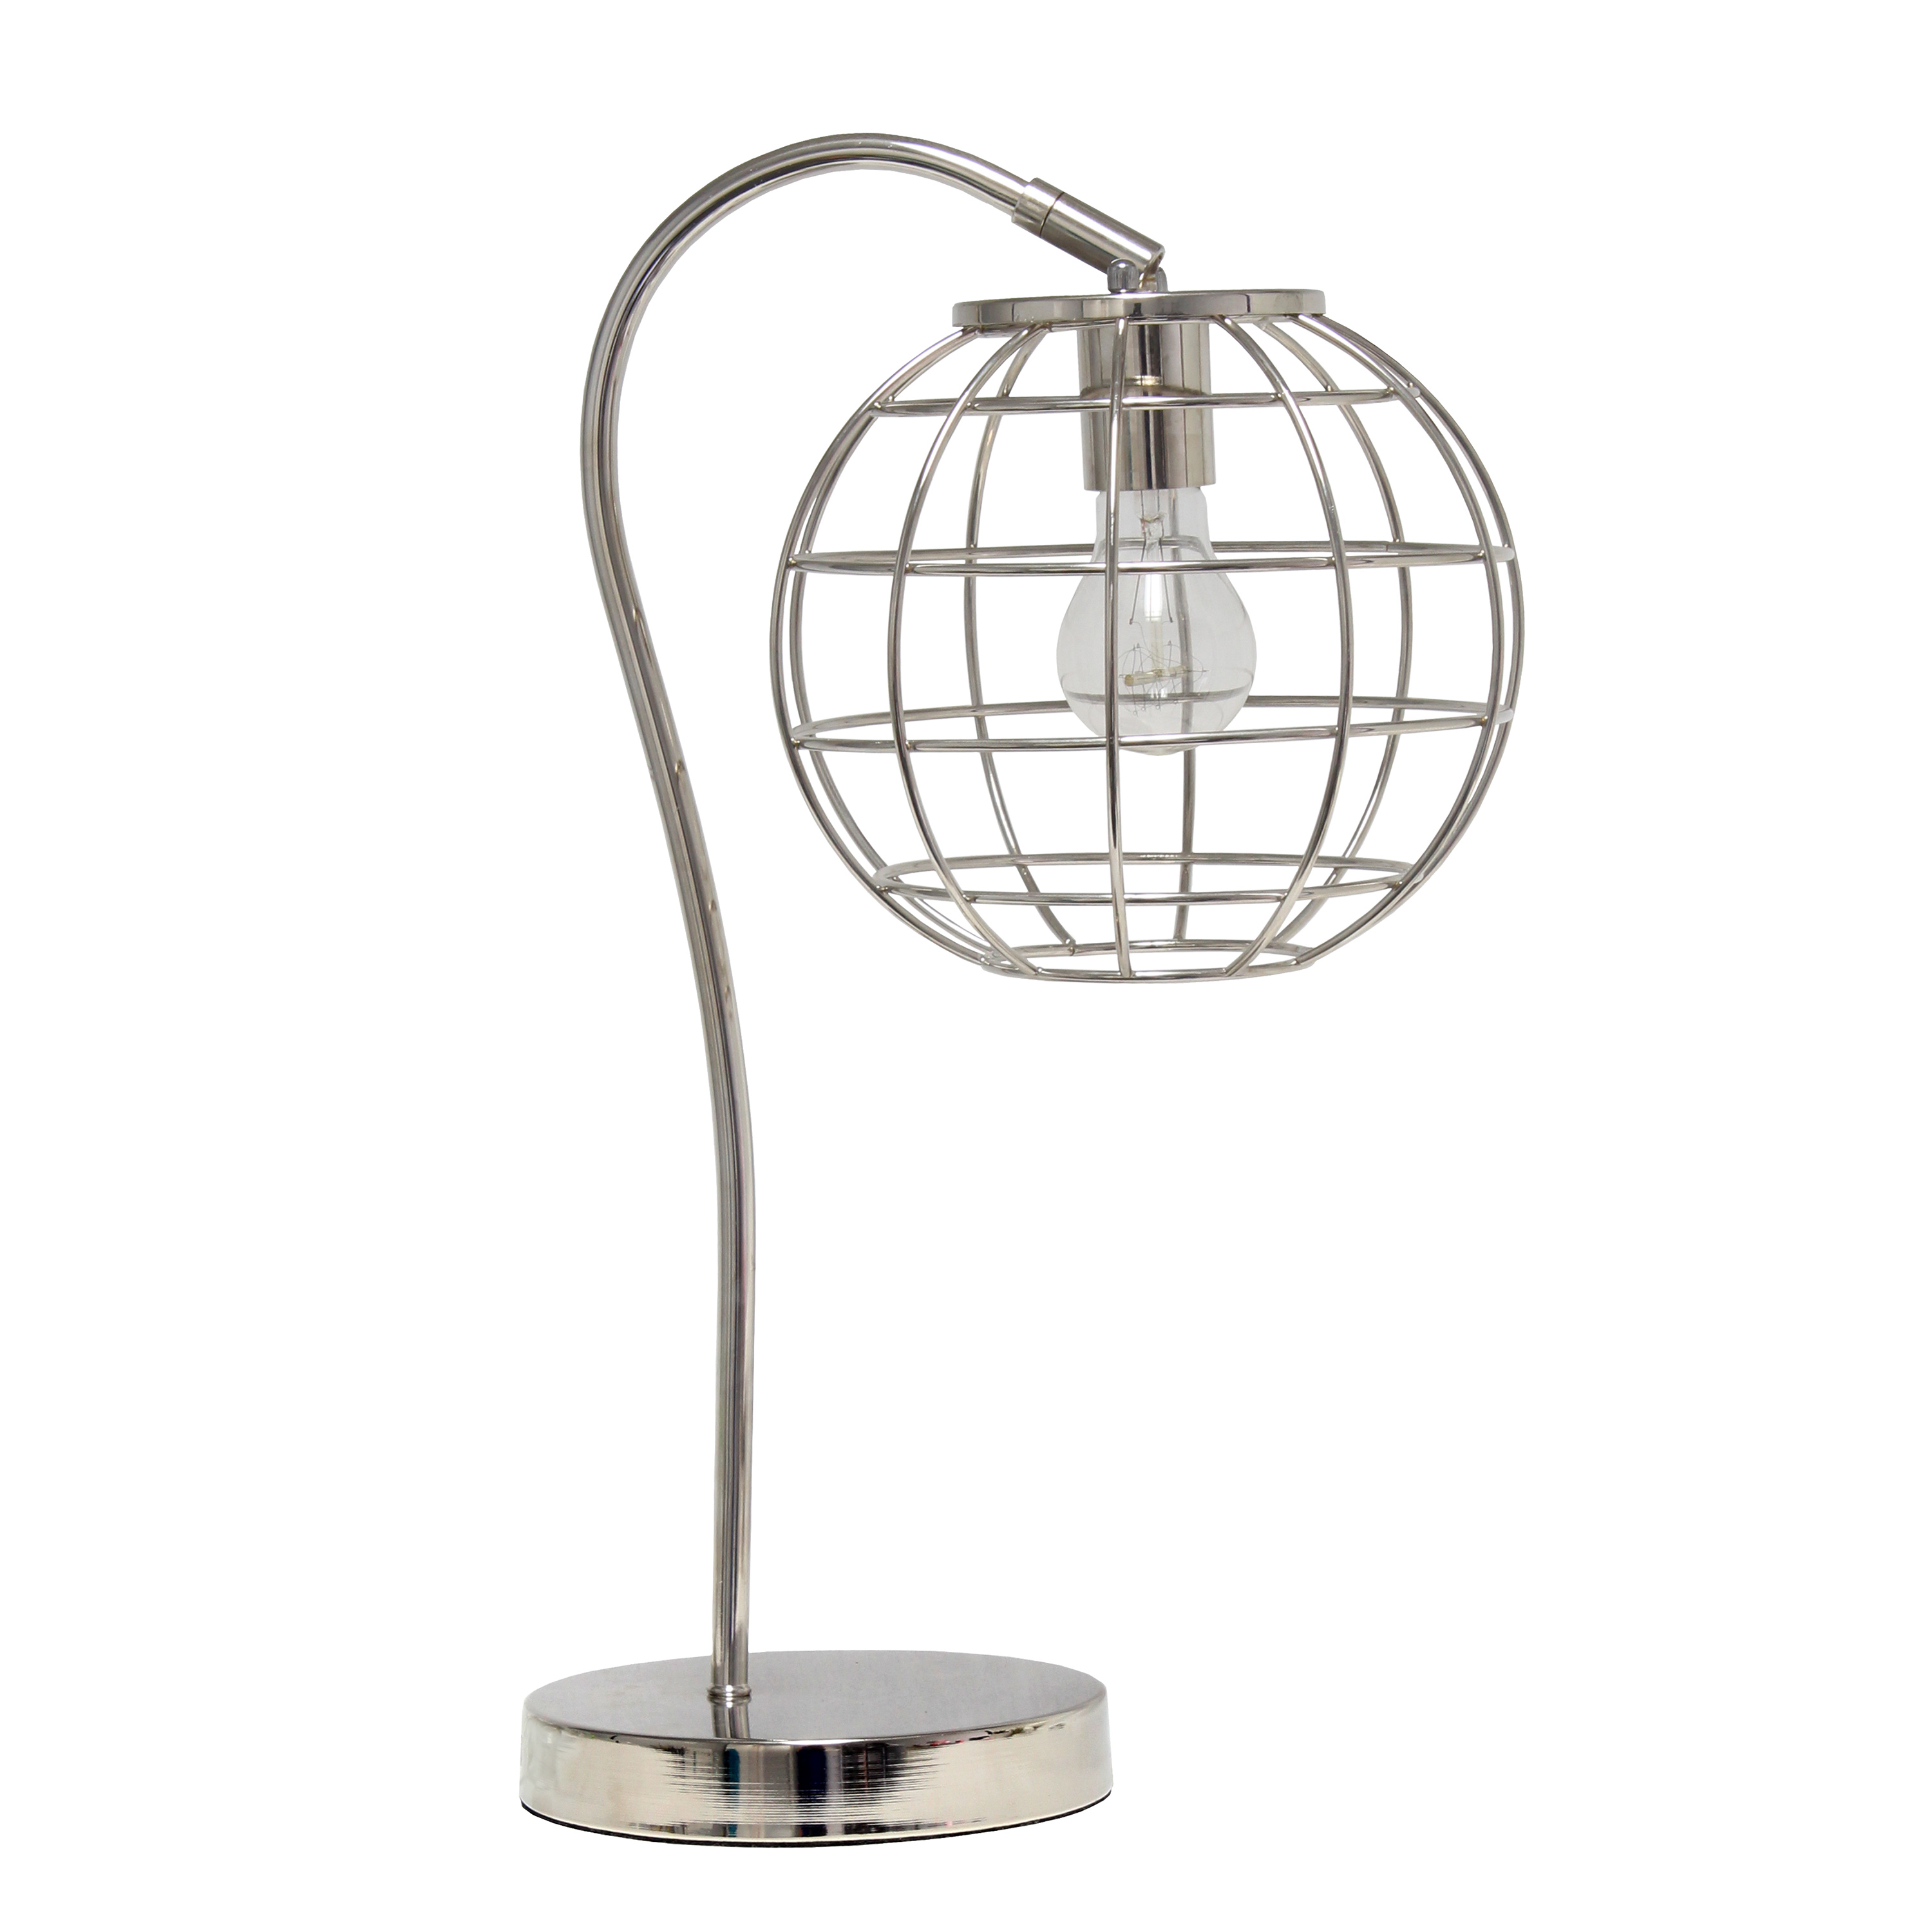 Lalia Home Arched Metal Cage Table Lamp, Chrome